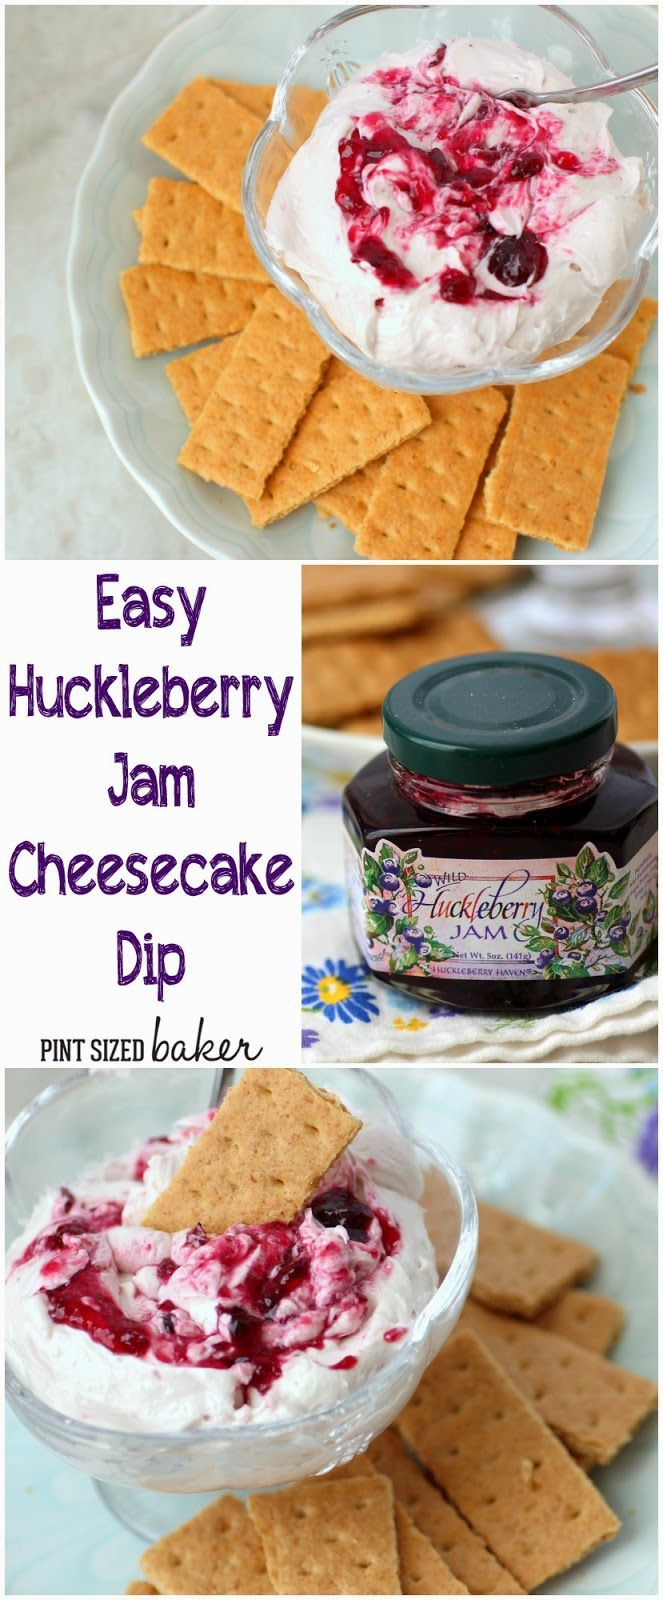 Pint Sized Baker: Huckleberry Jam Cheesecake Dip - Quick and Easy for those surprise guests.